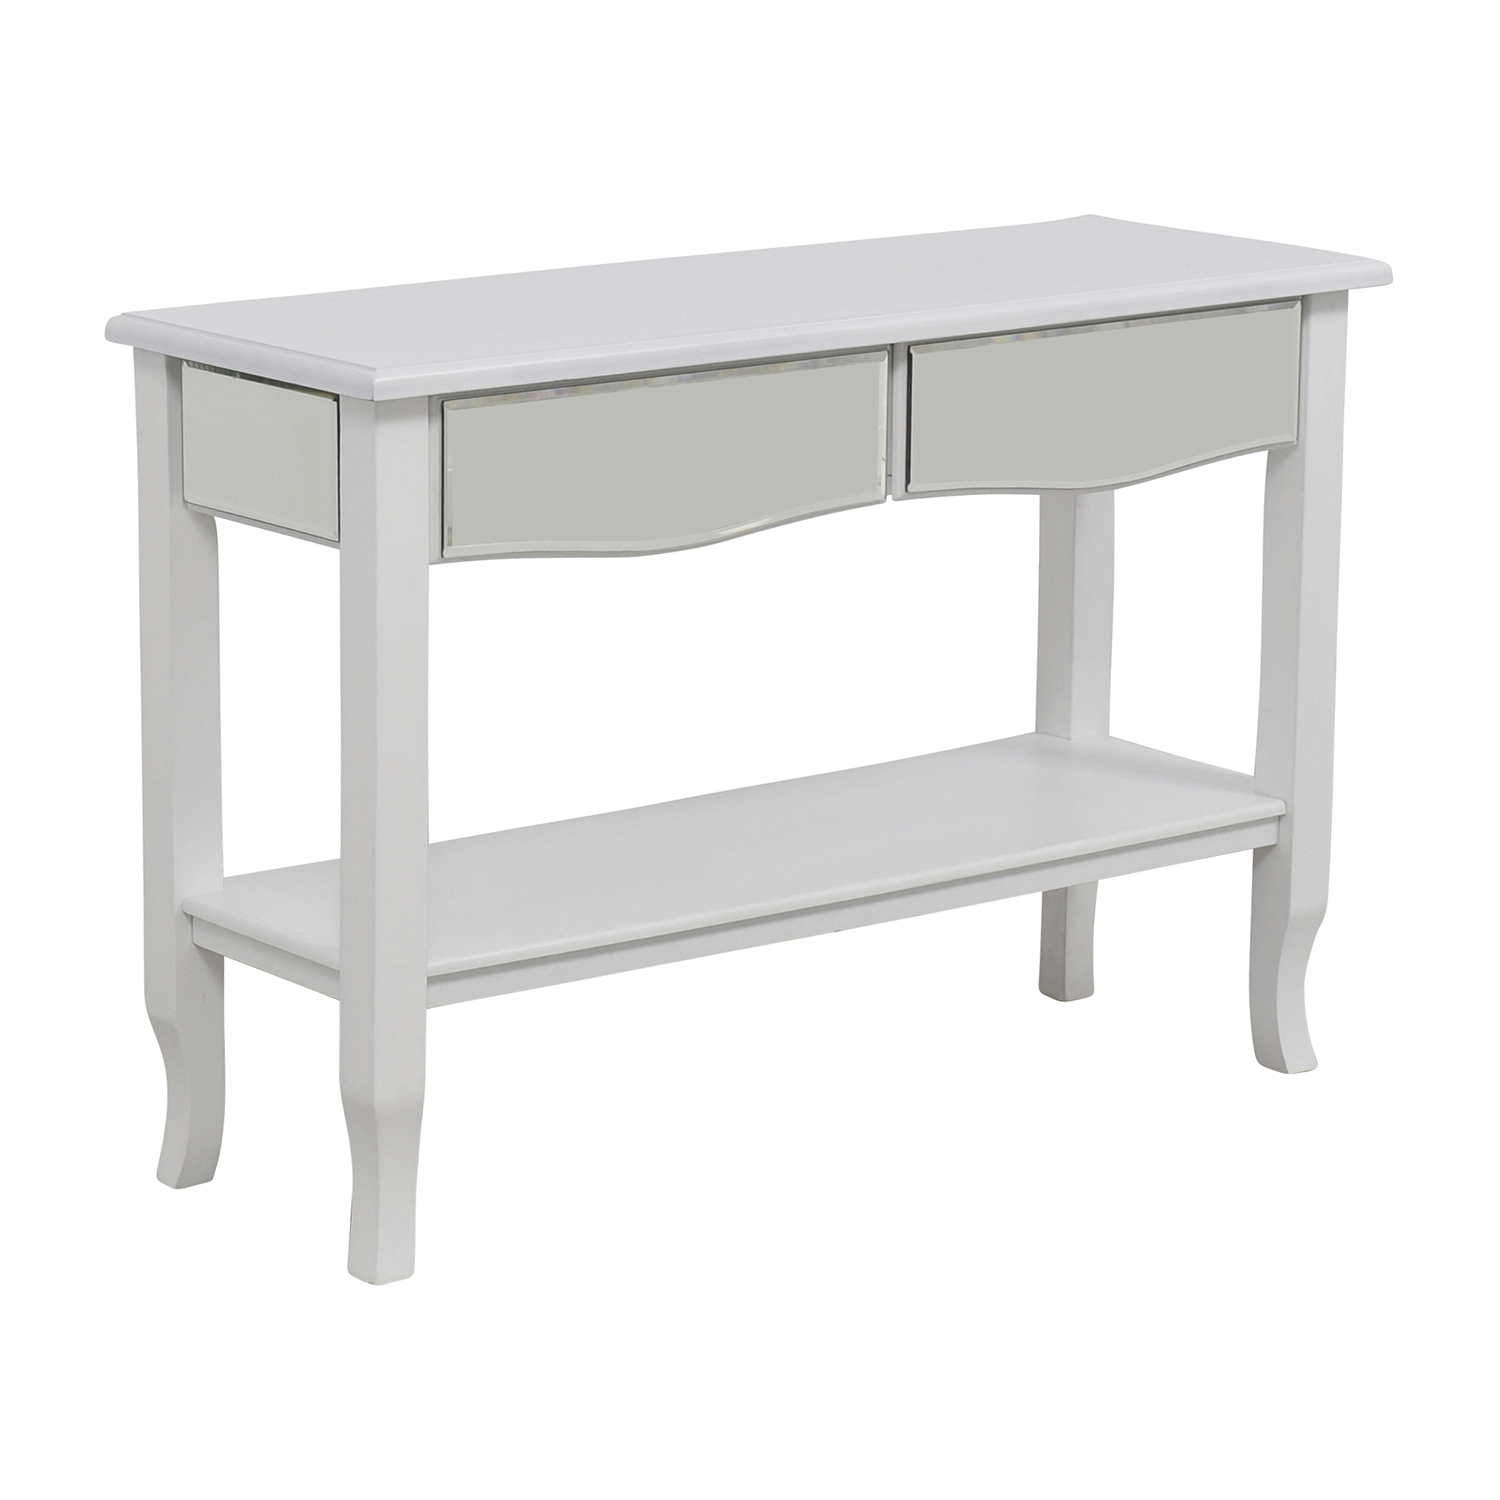 Lovely ... Buy White Mirrored Console Table With Two Drawers ...